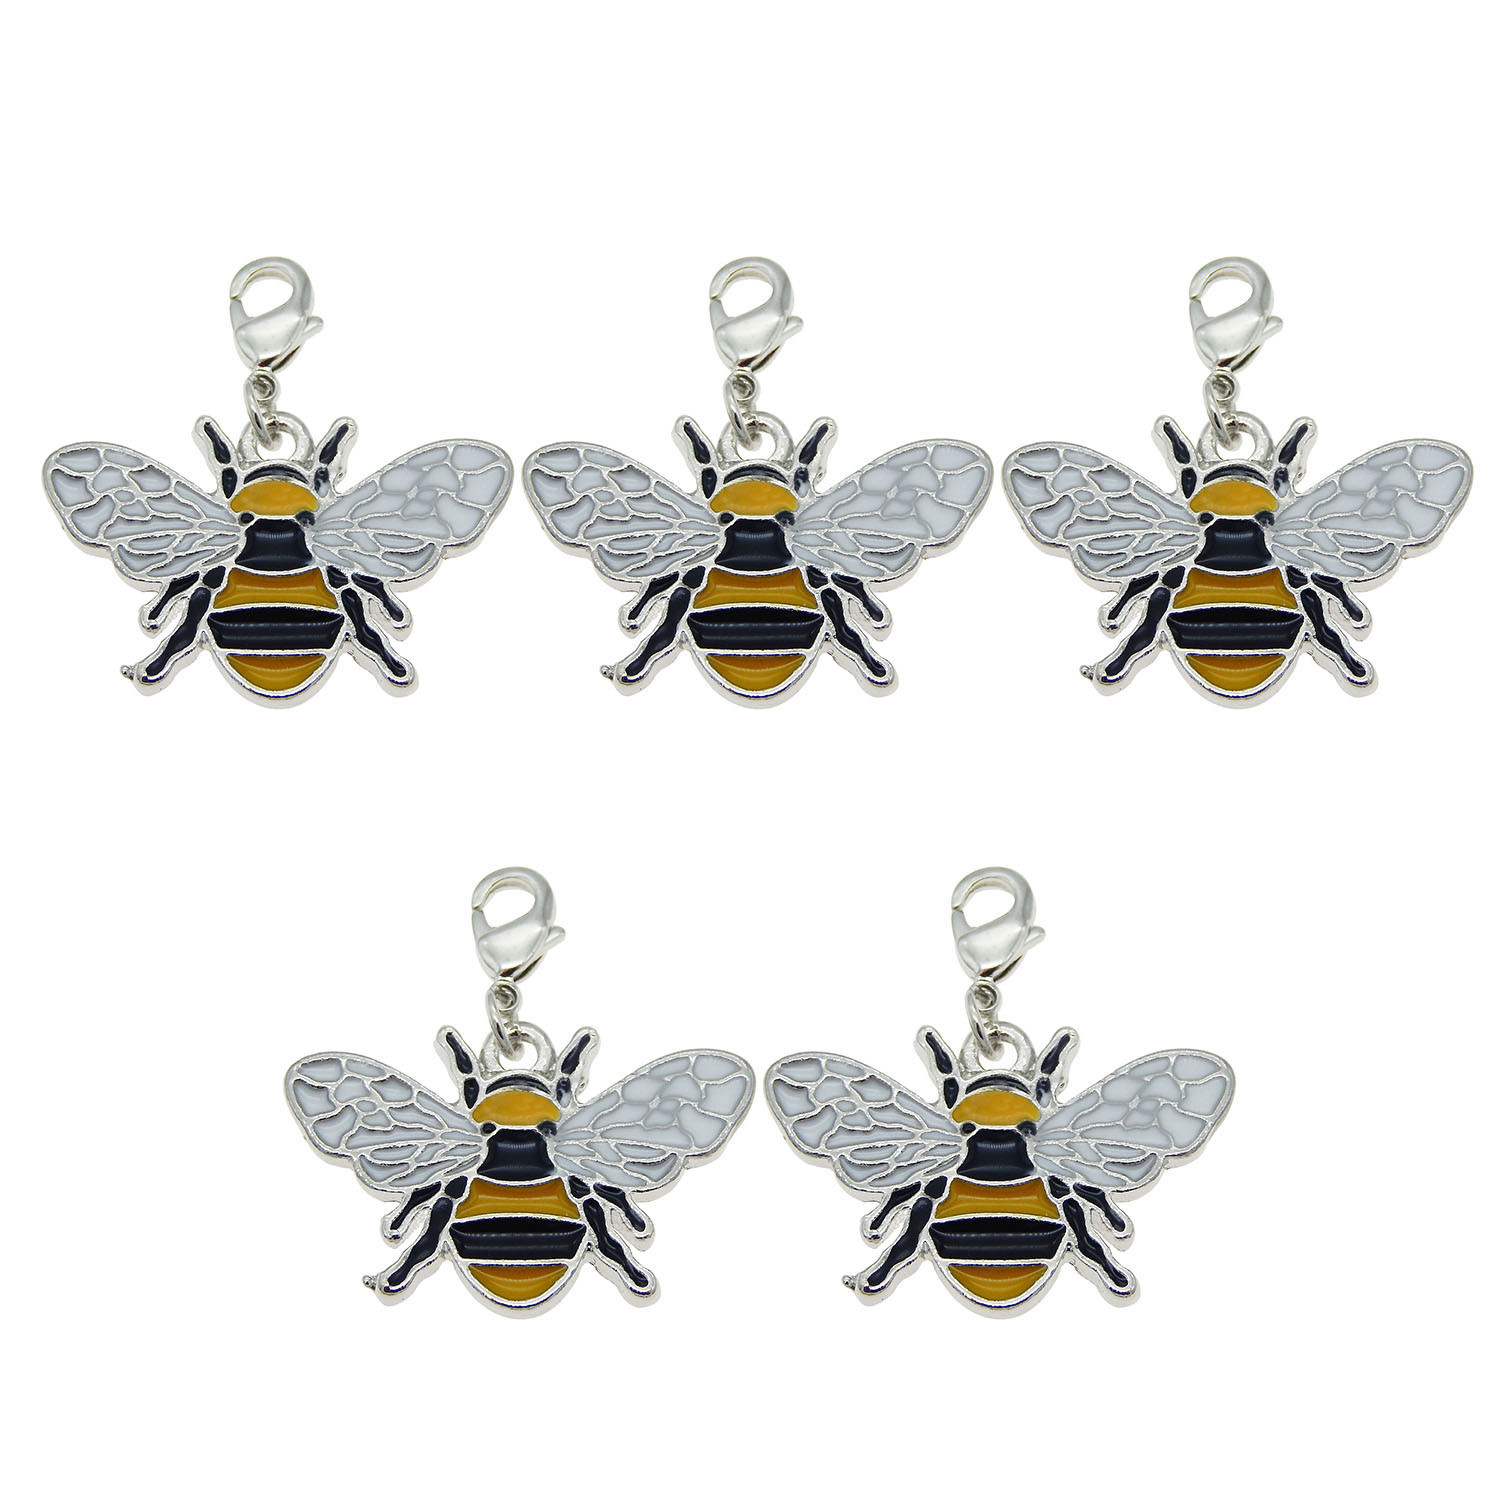 Lot of 8 Multi-colors Enamel Honeybee Charm Necklace Pendant 26x17 MM DIY Crafts